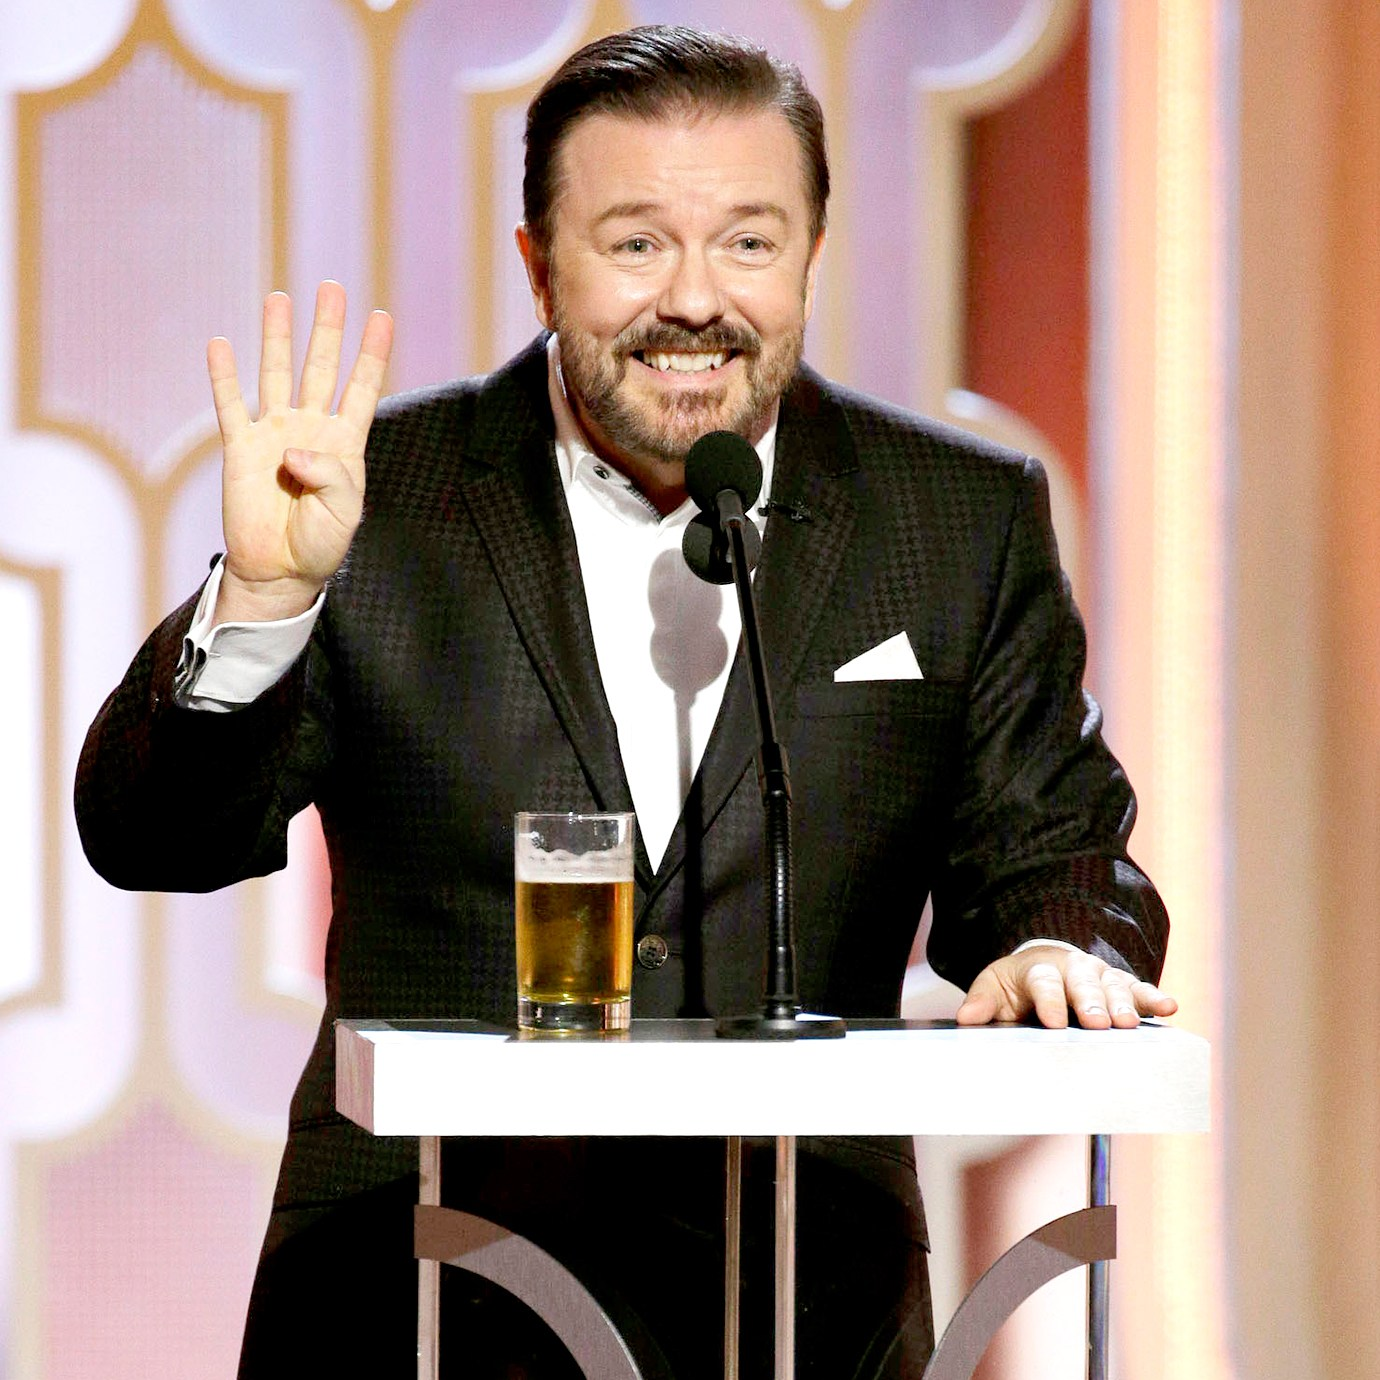 Ricky Gervais speaks onstage during the 73rd Annual Golden Globe Awards.